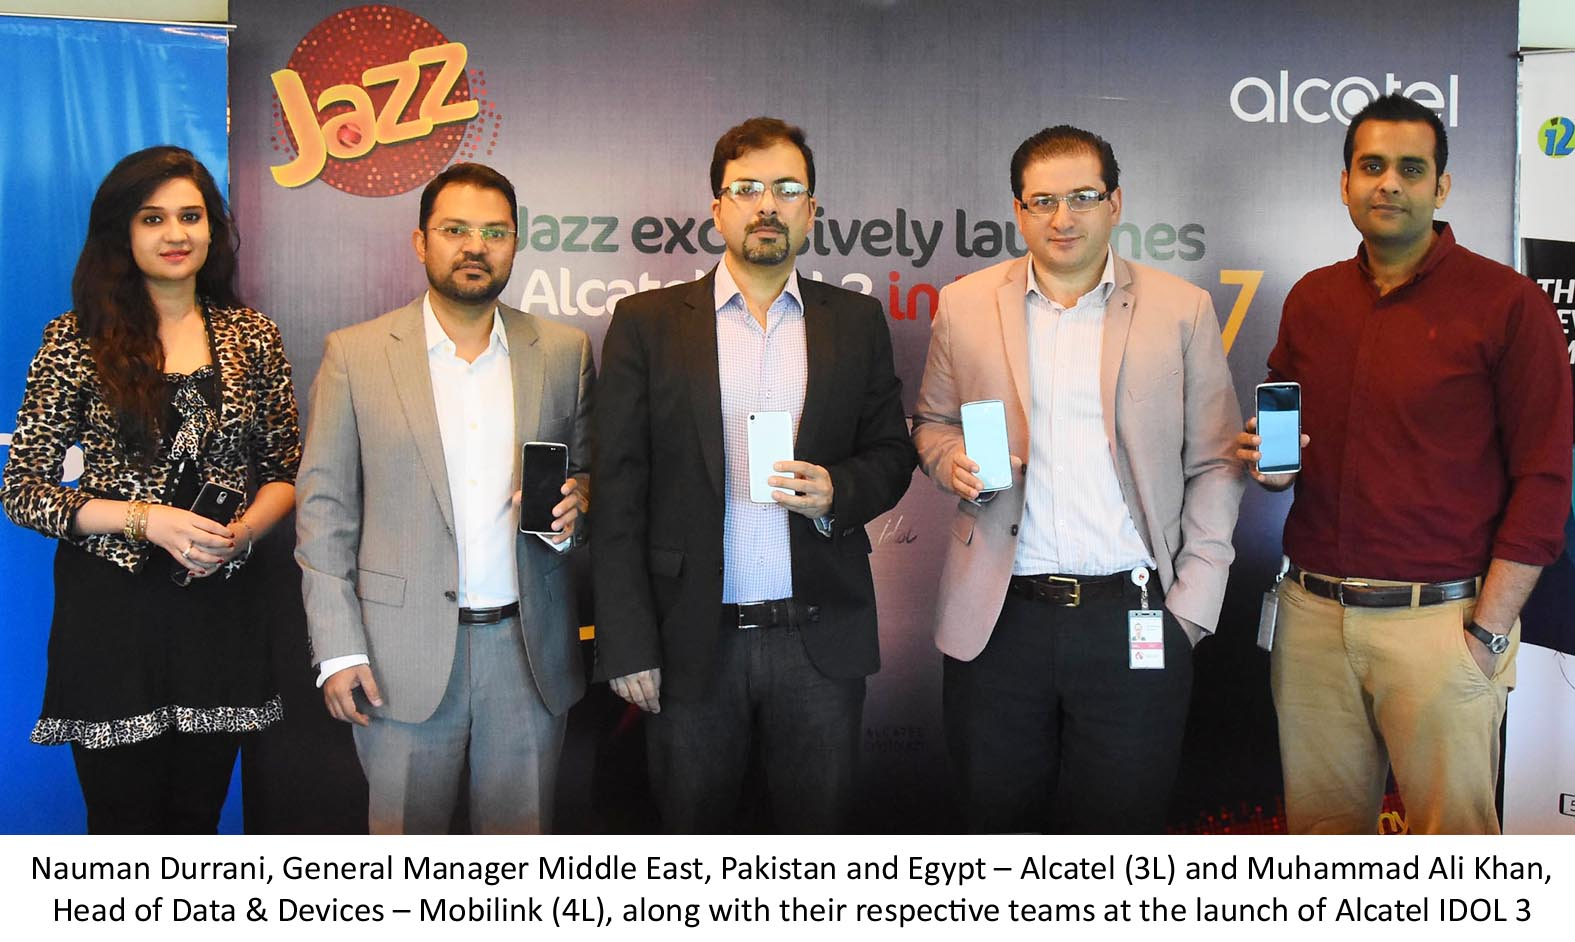 Mobilink, Mobilink Launching Alcatel IDOL3, Smartphones, Mobilink launching smartphones